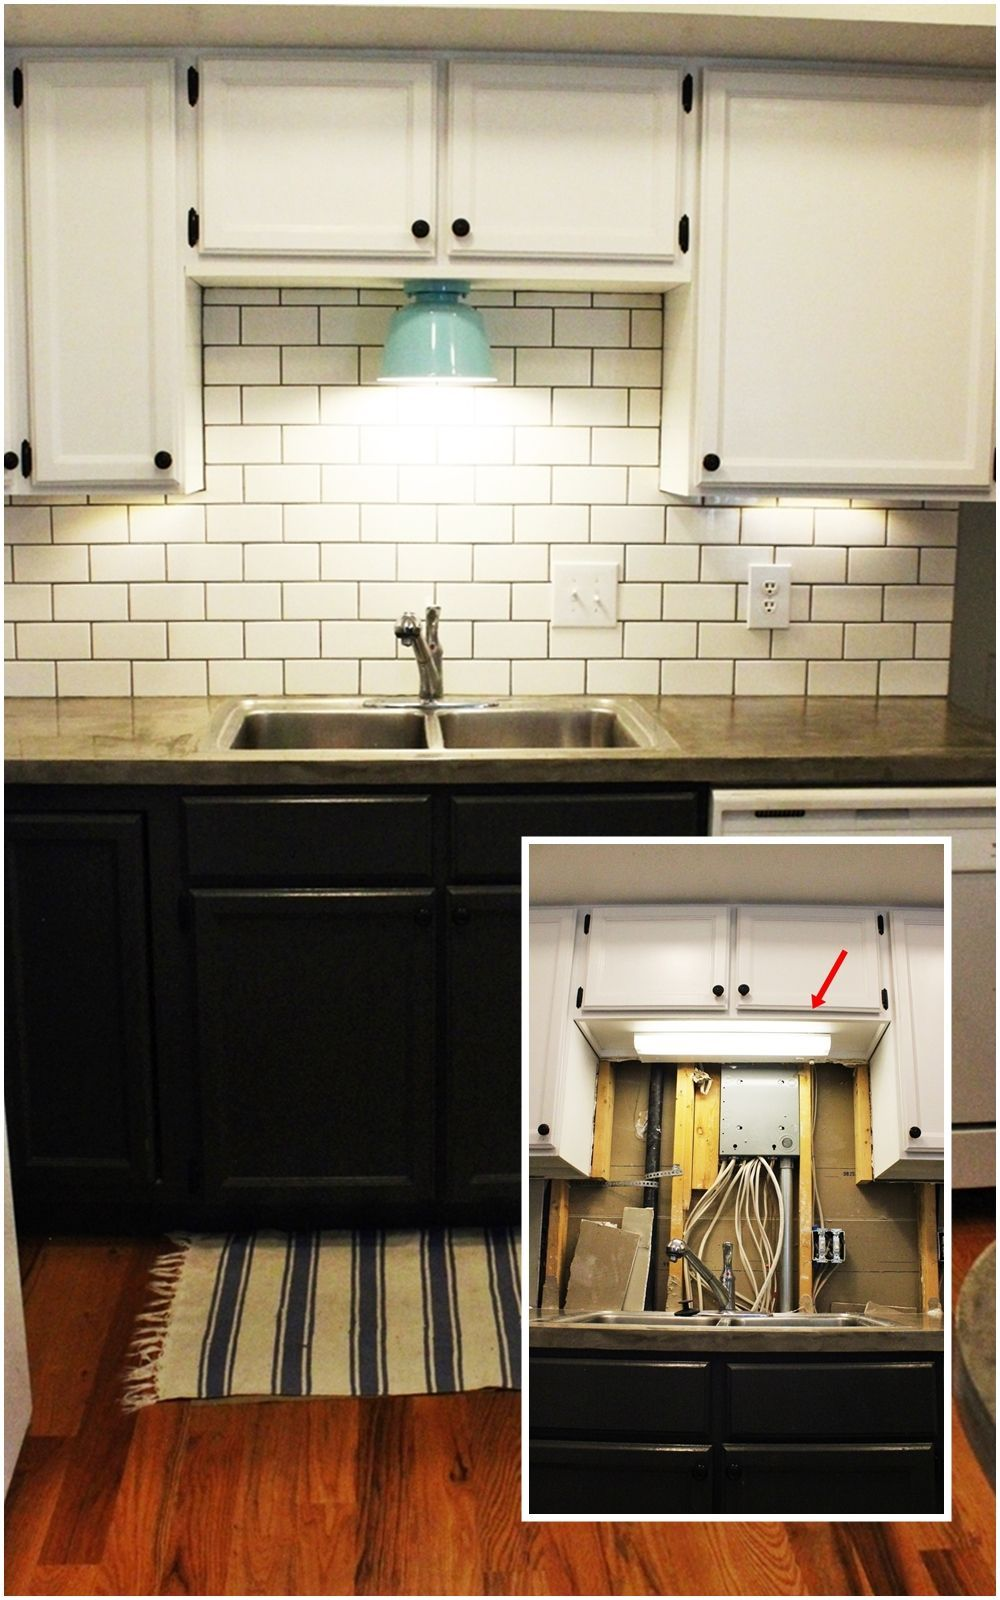 DIY Kitchen Lighting Upgrade: LED Under-Cabinet Lights & Above-the on white kitchen crown molding, white kitchen gray, white cabinets design, walnut kitchen cabinets, white kitchen granite, white kitchen wall color, white kitchen tile, black kitchen cabinets, white kitchen travertine floors, white kitchen white, white kitchen modern, white kitchen wood flooring, white kitchen breakfast nook, white kitchen vaulted ceilings, oak kitchen cabinets, country kitchens with white cabinets, white kitchen double oven, hardwood floors dark cabinets, green dark cabinets, white kitchen backsplash,